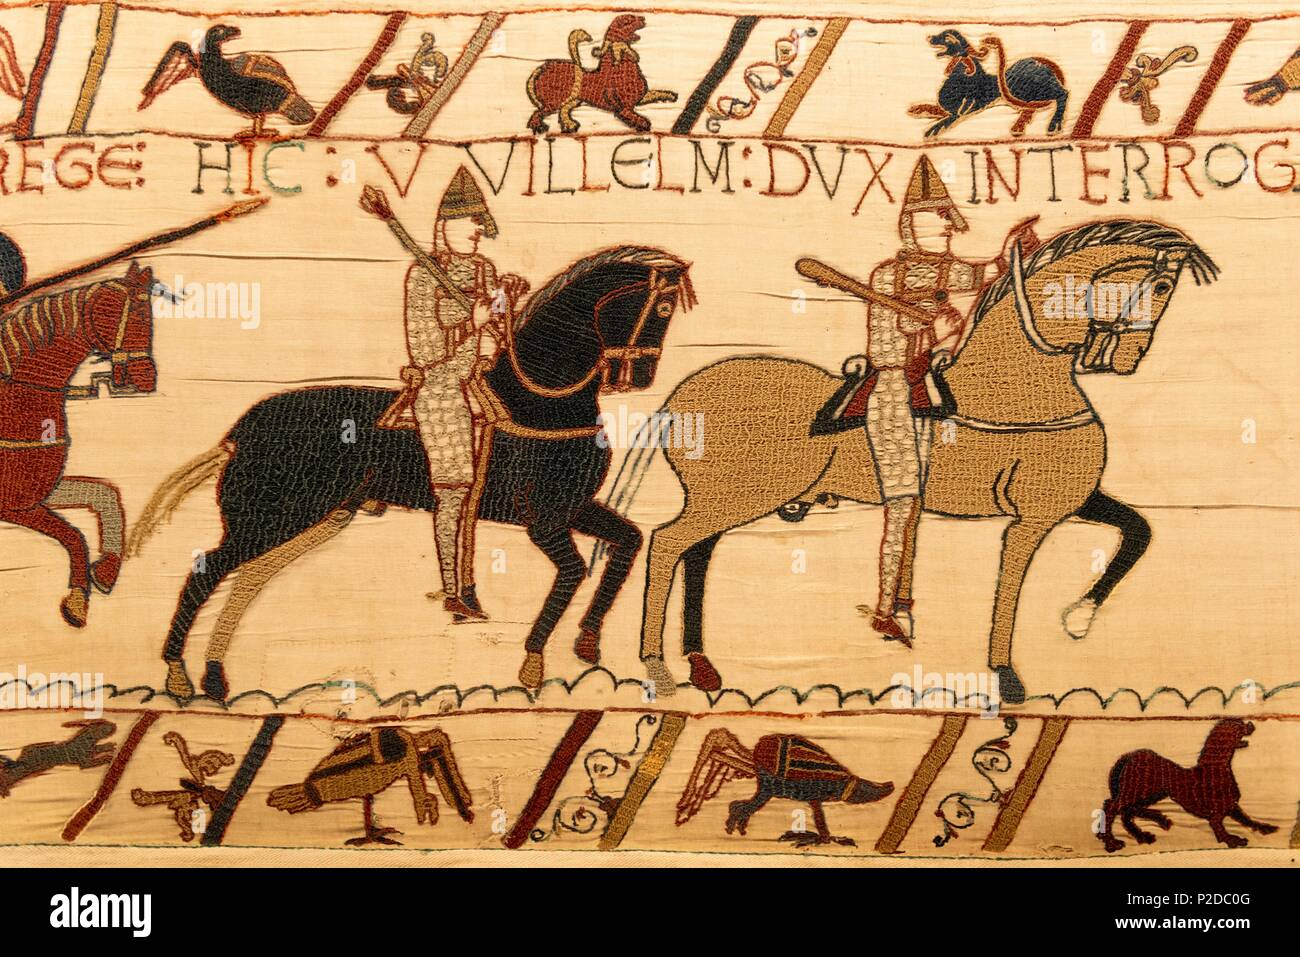 Teppich Von Bayeux Animation France Normandie Calvados Bayeux Bayeux Tapestry